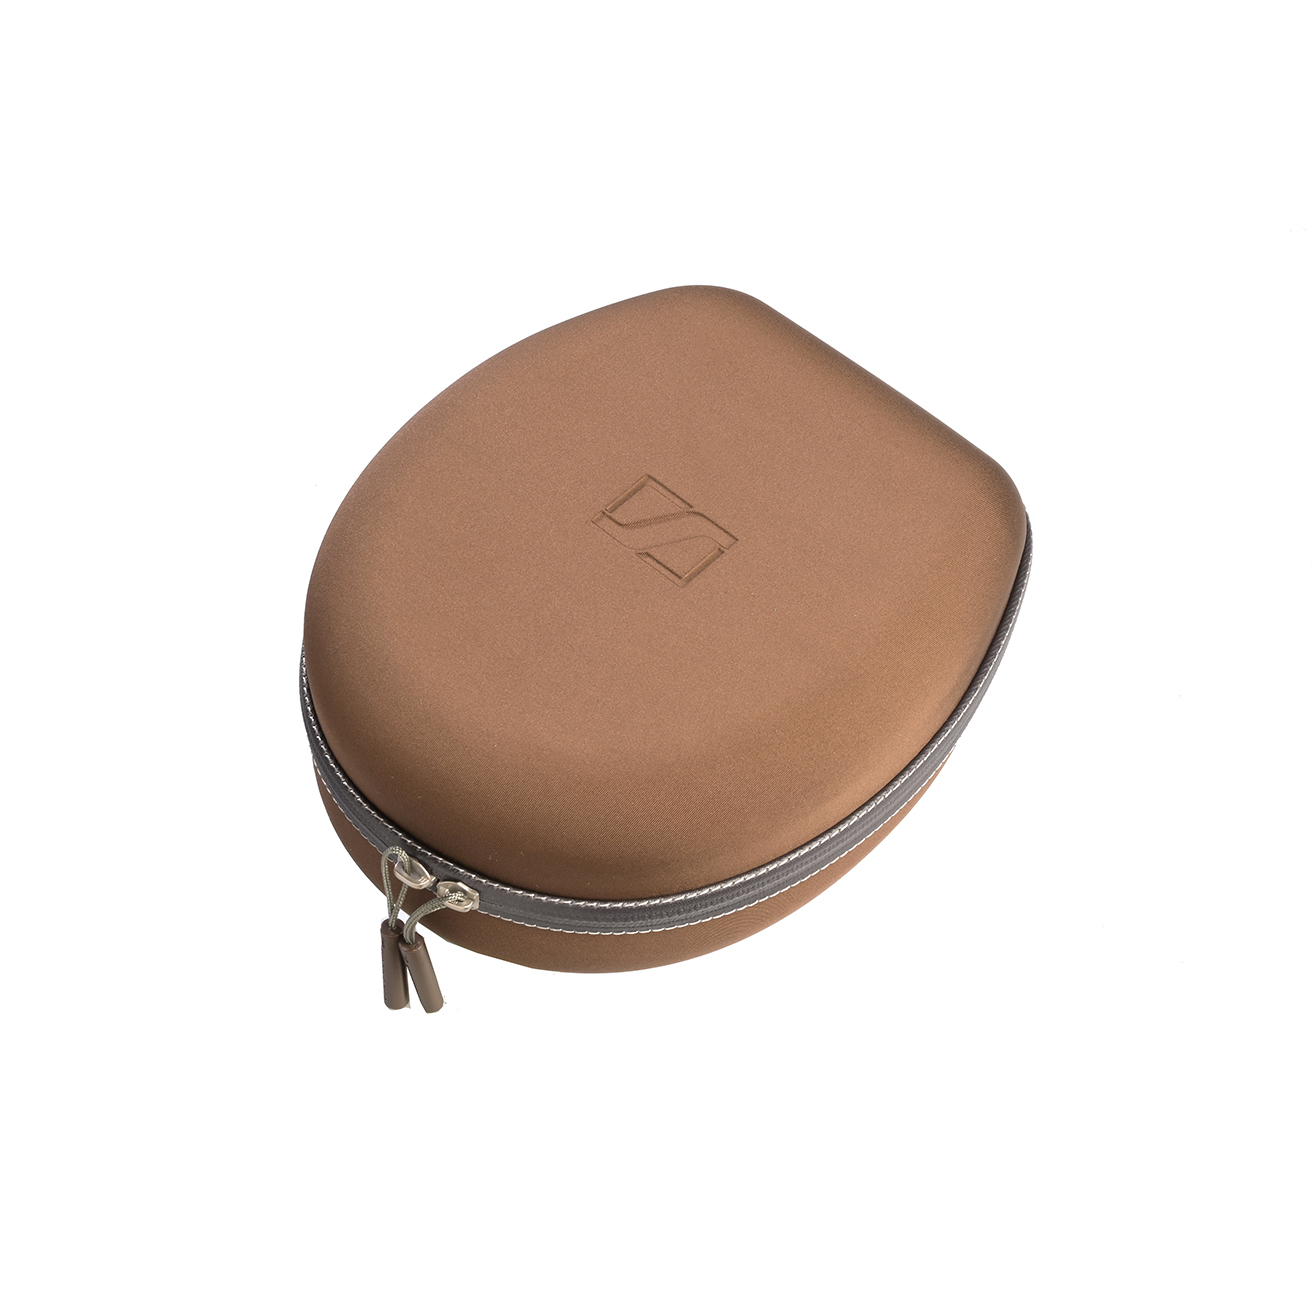 Carrying case,